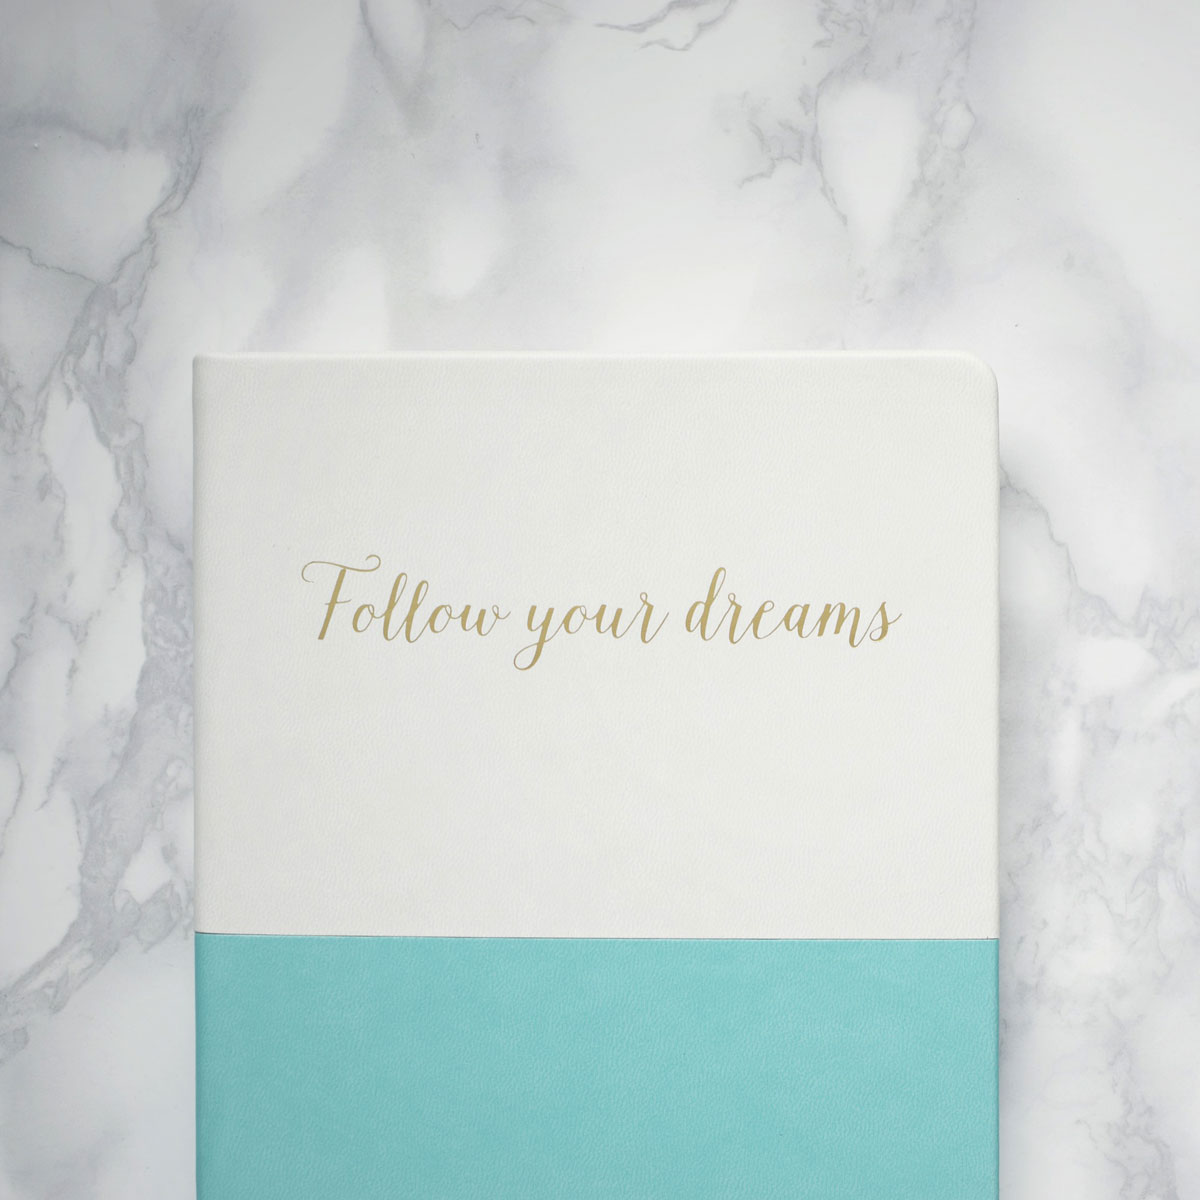 Five Little Things; A brain dump of all my thoughts - Follow your dreams leather notebook and happily ever after card from TK Maxx